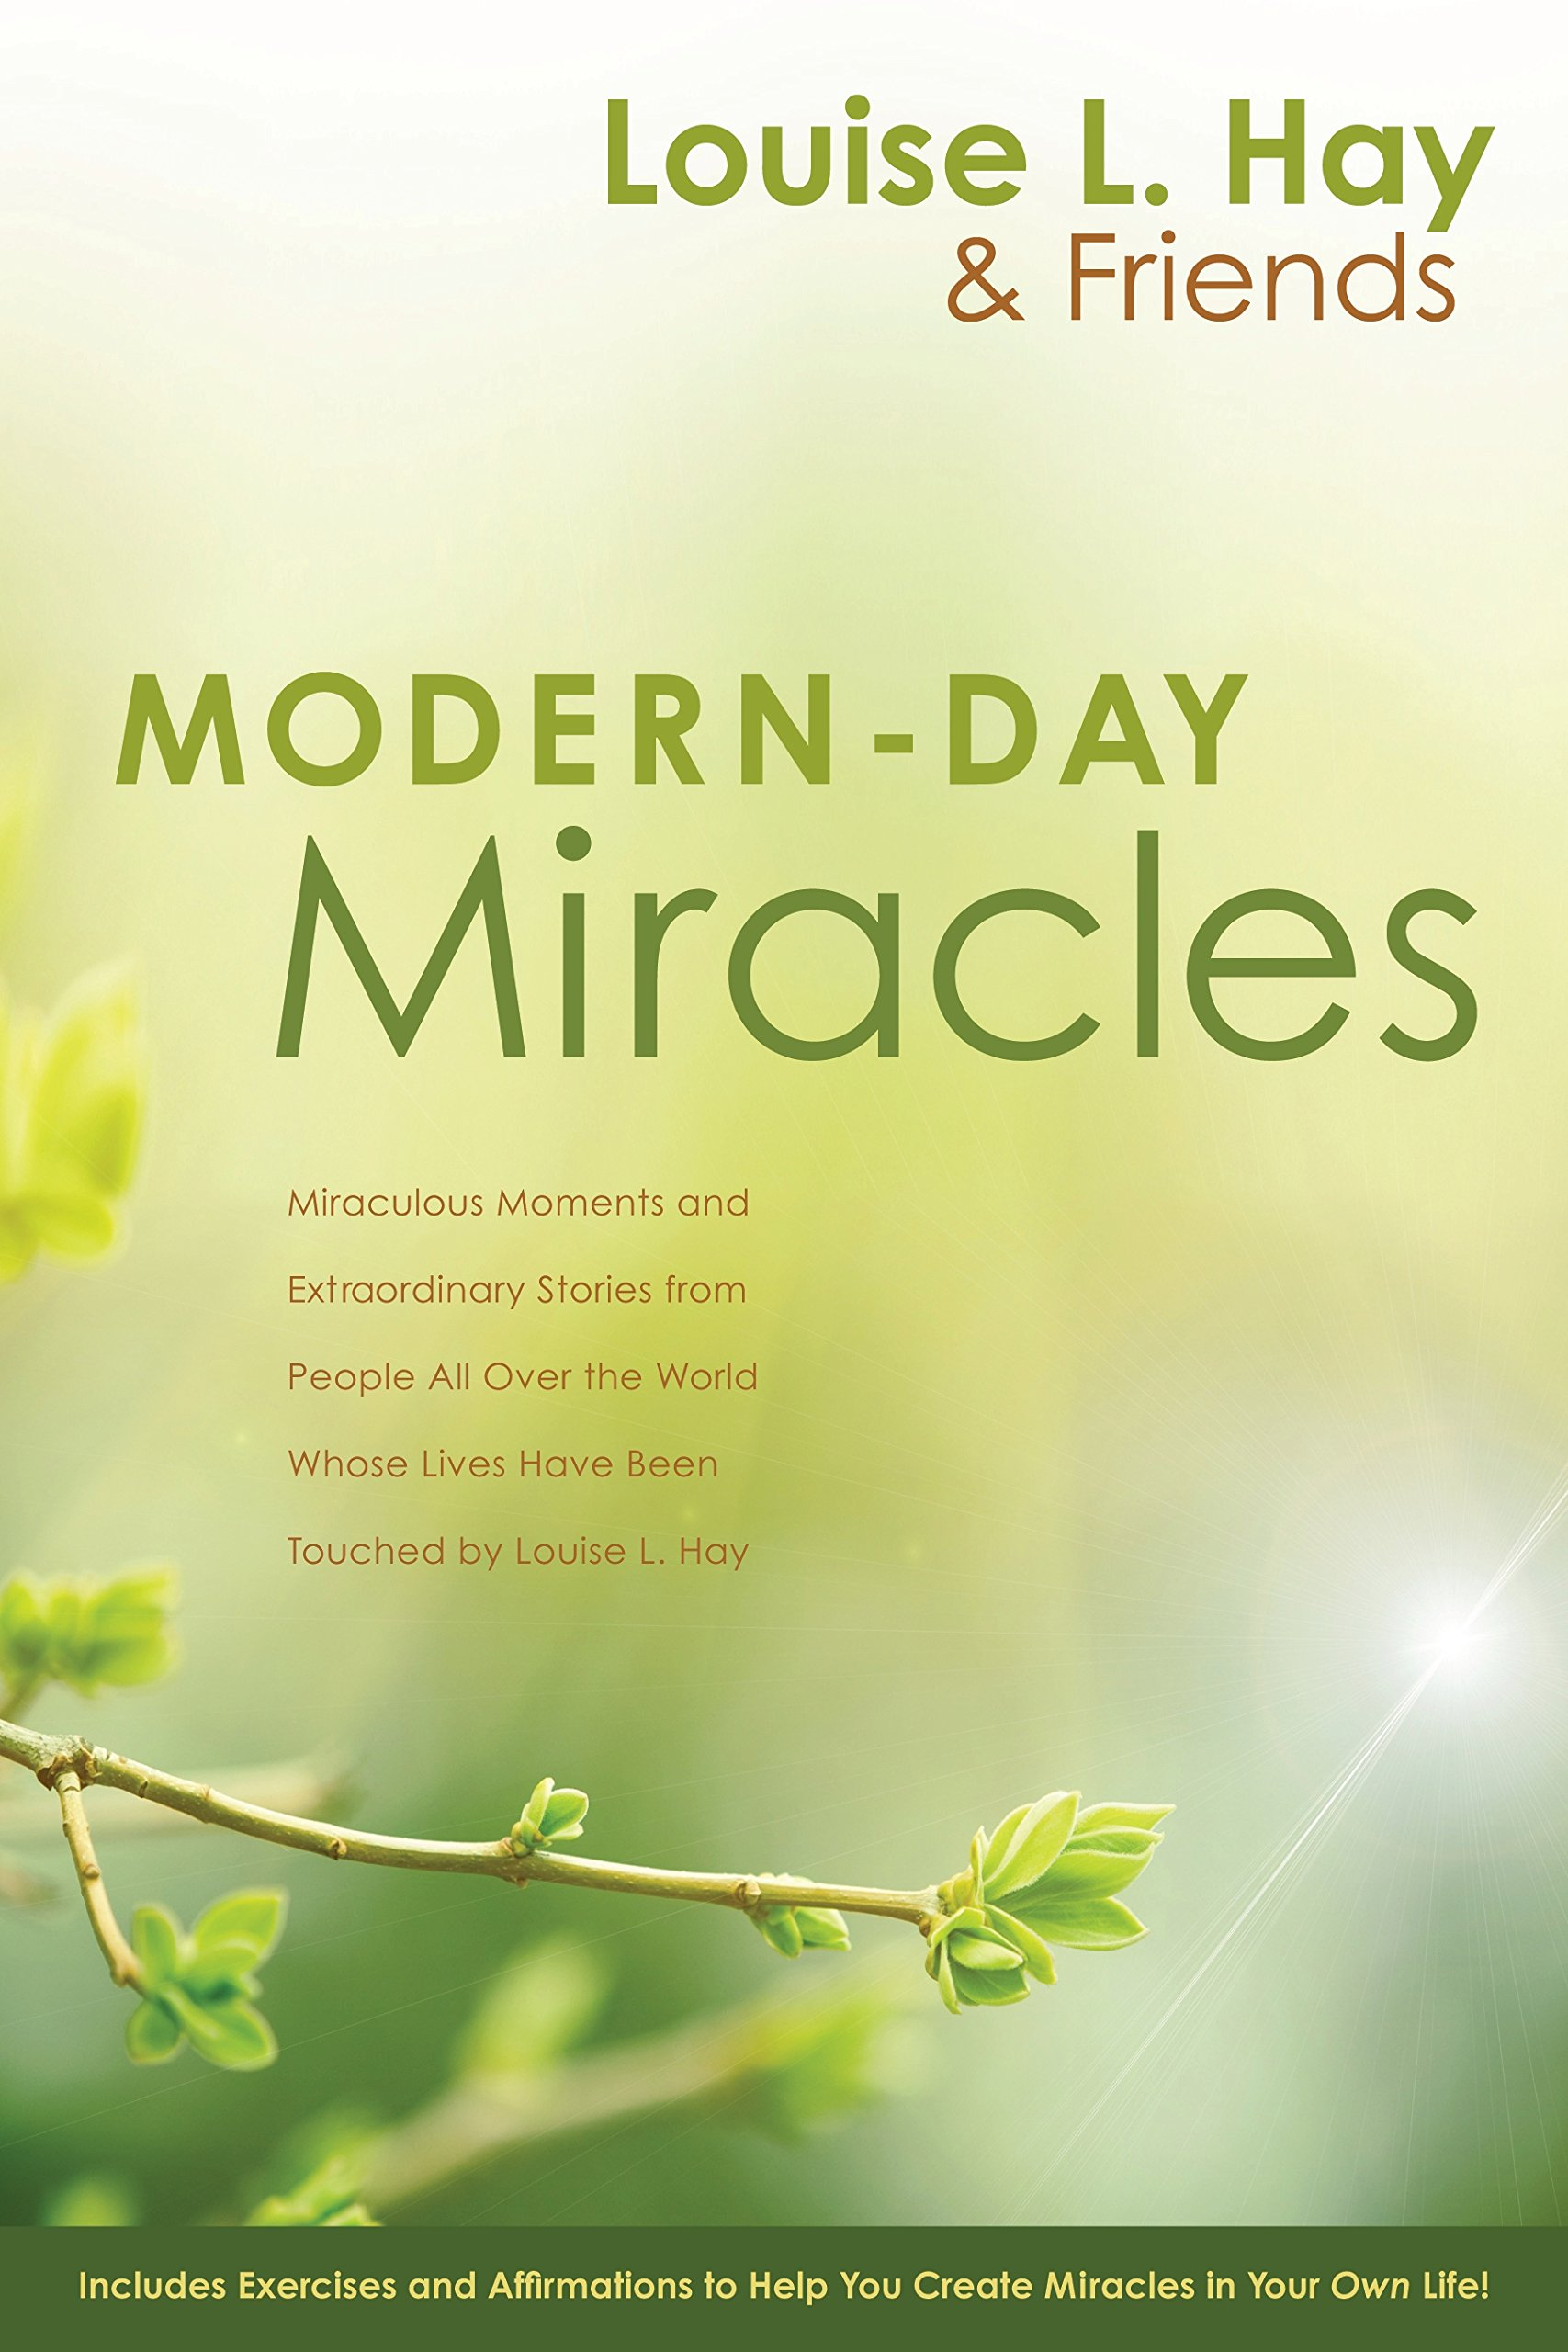 Download Modern-Day Miracles: Miraculous Moments and Extraordinary Stories from People All Over the World Whose Lives Have Been Touched by Louise L. Hay PDF